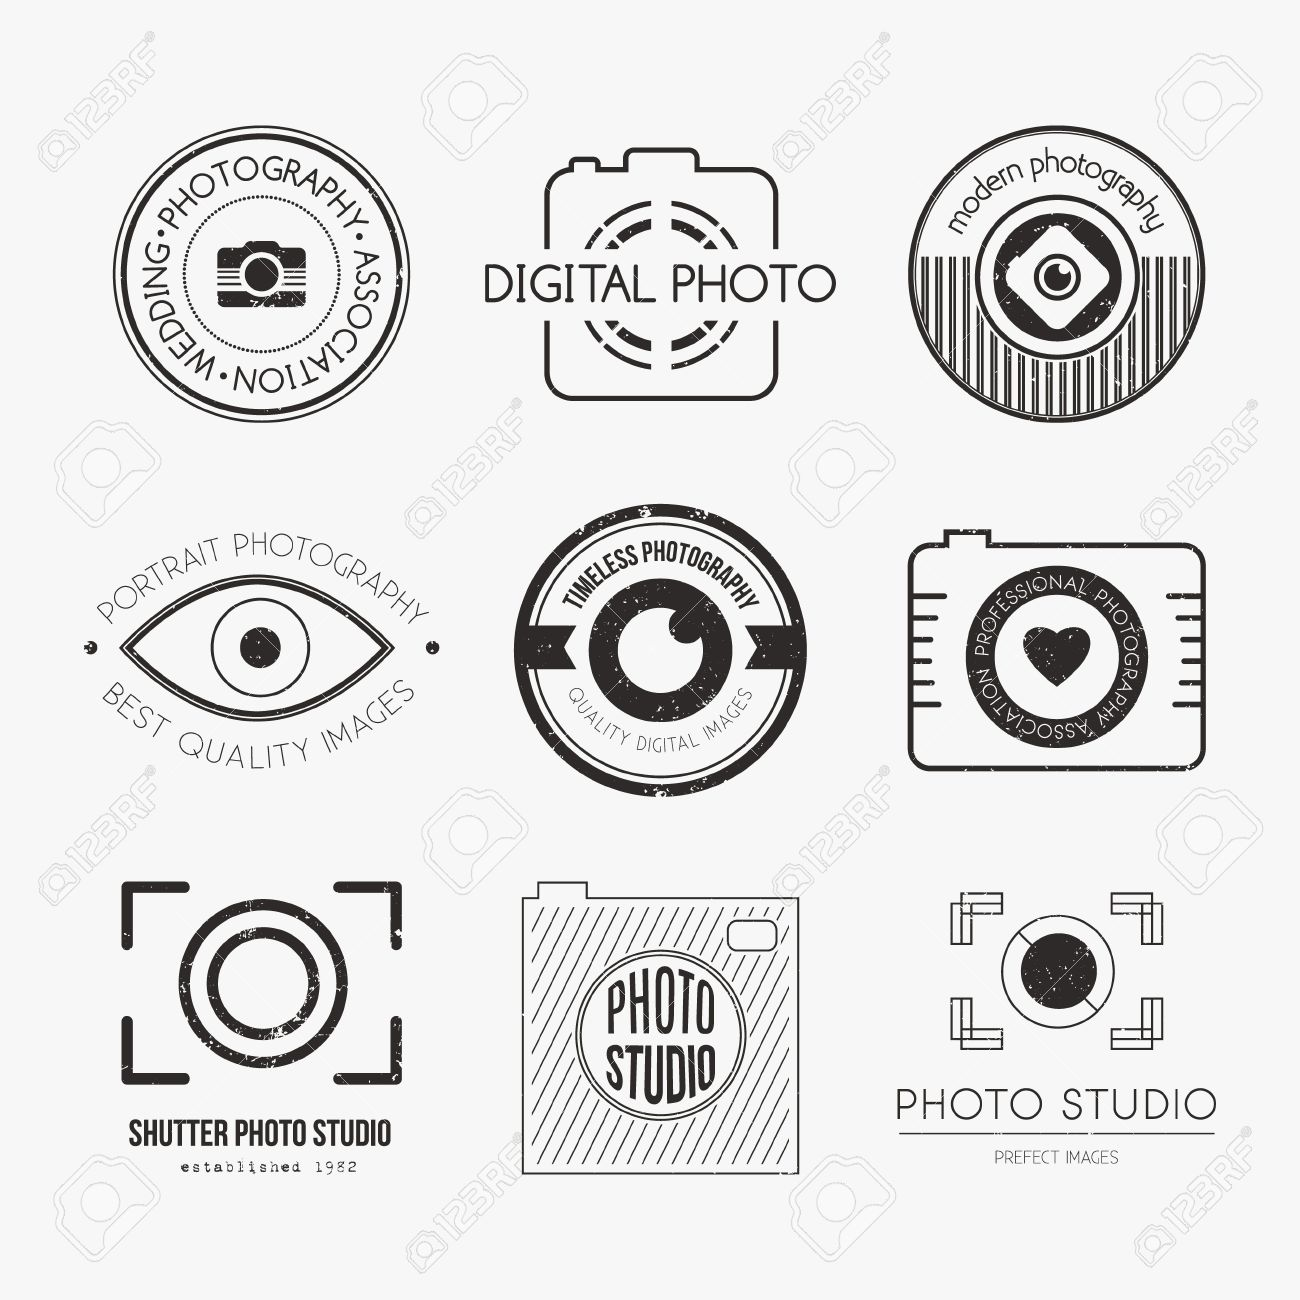 4012 Photography Logo Cliparts Stock Vector And Royalty Free